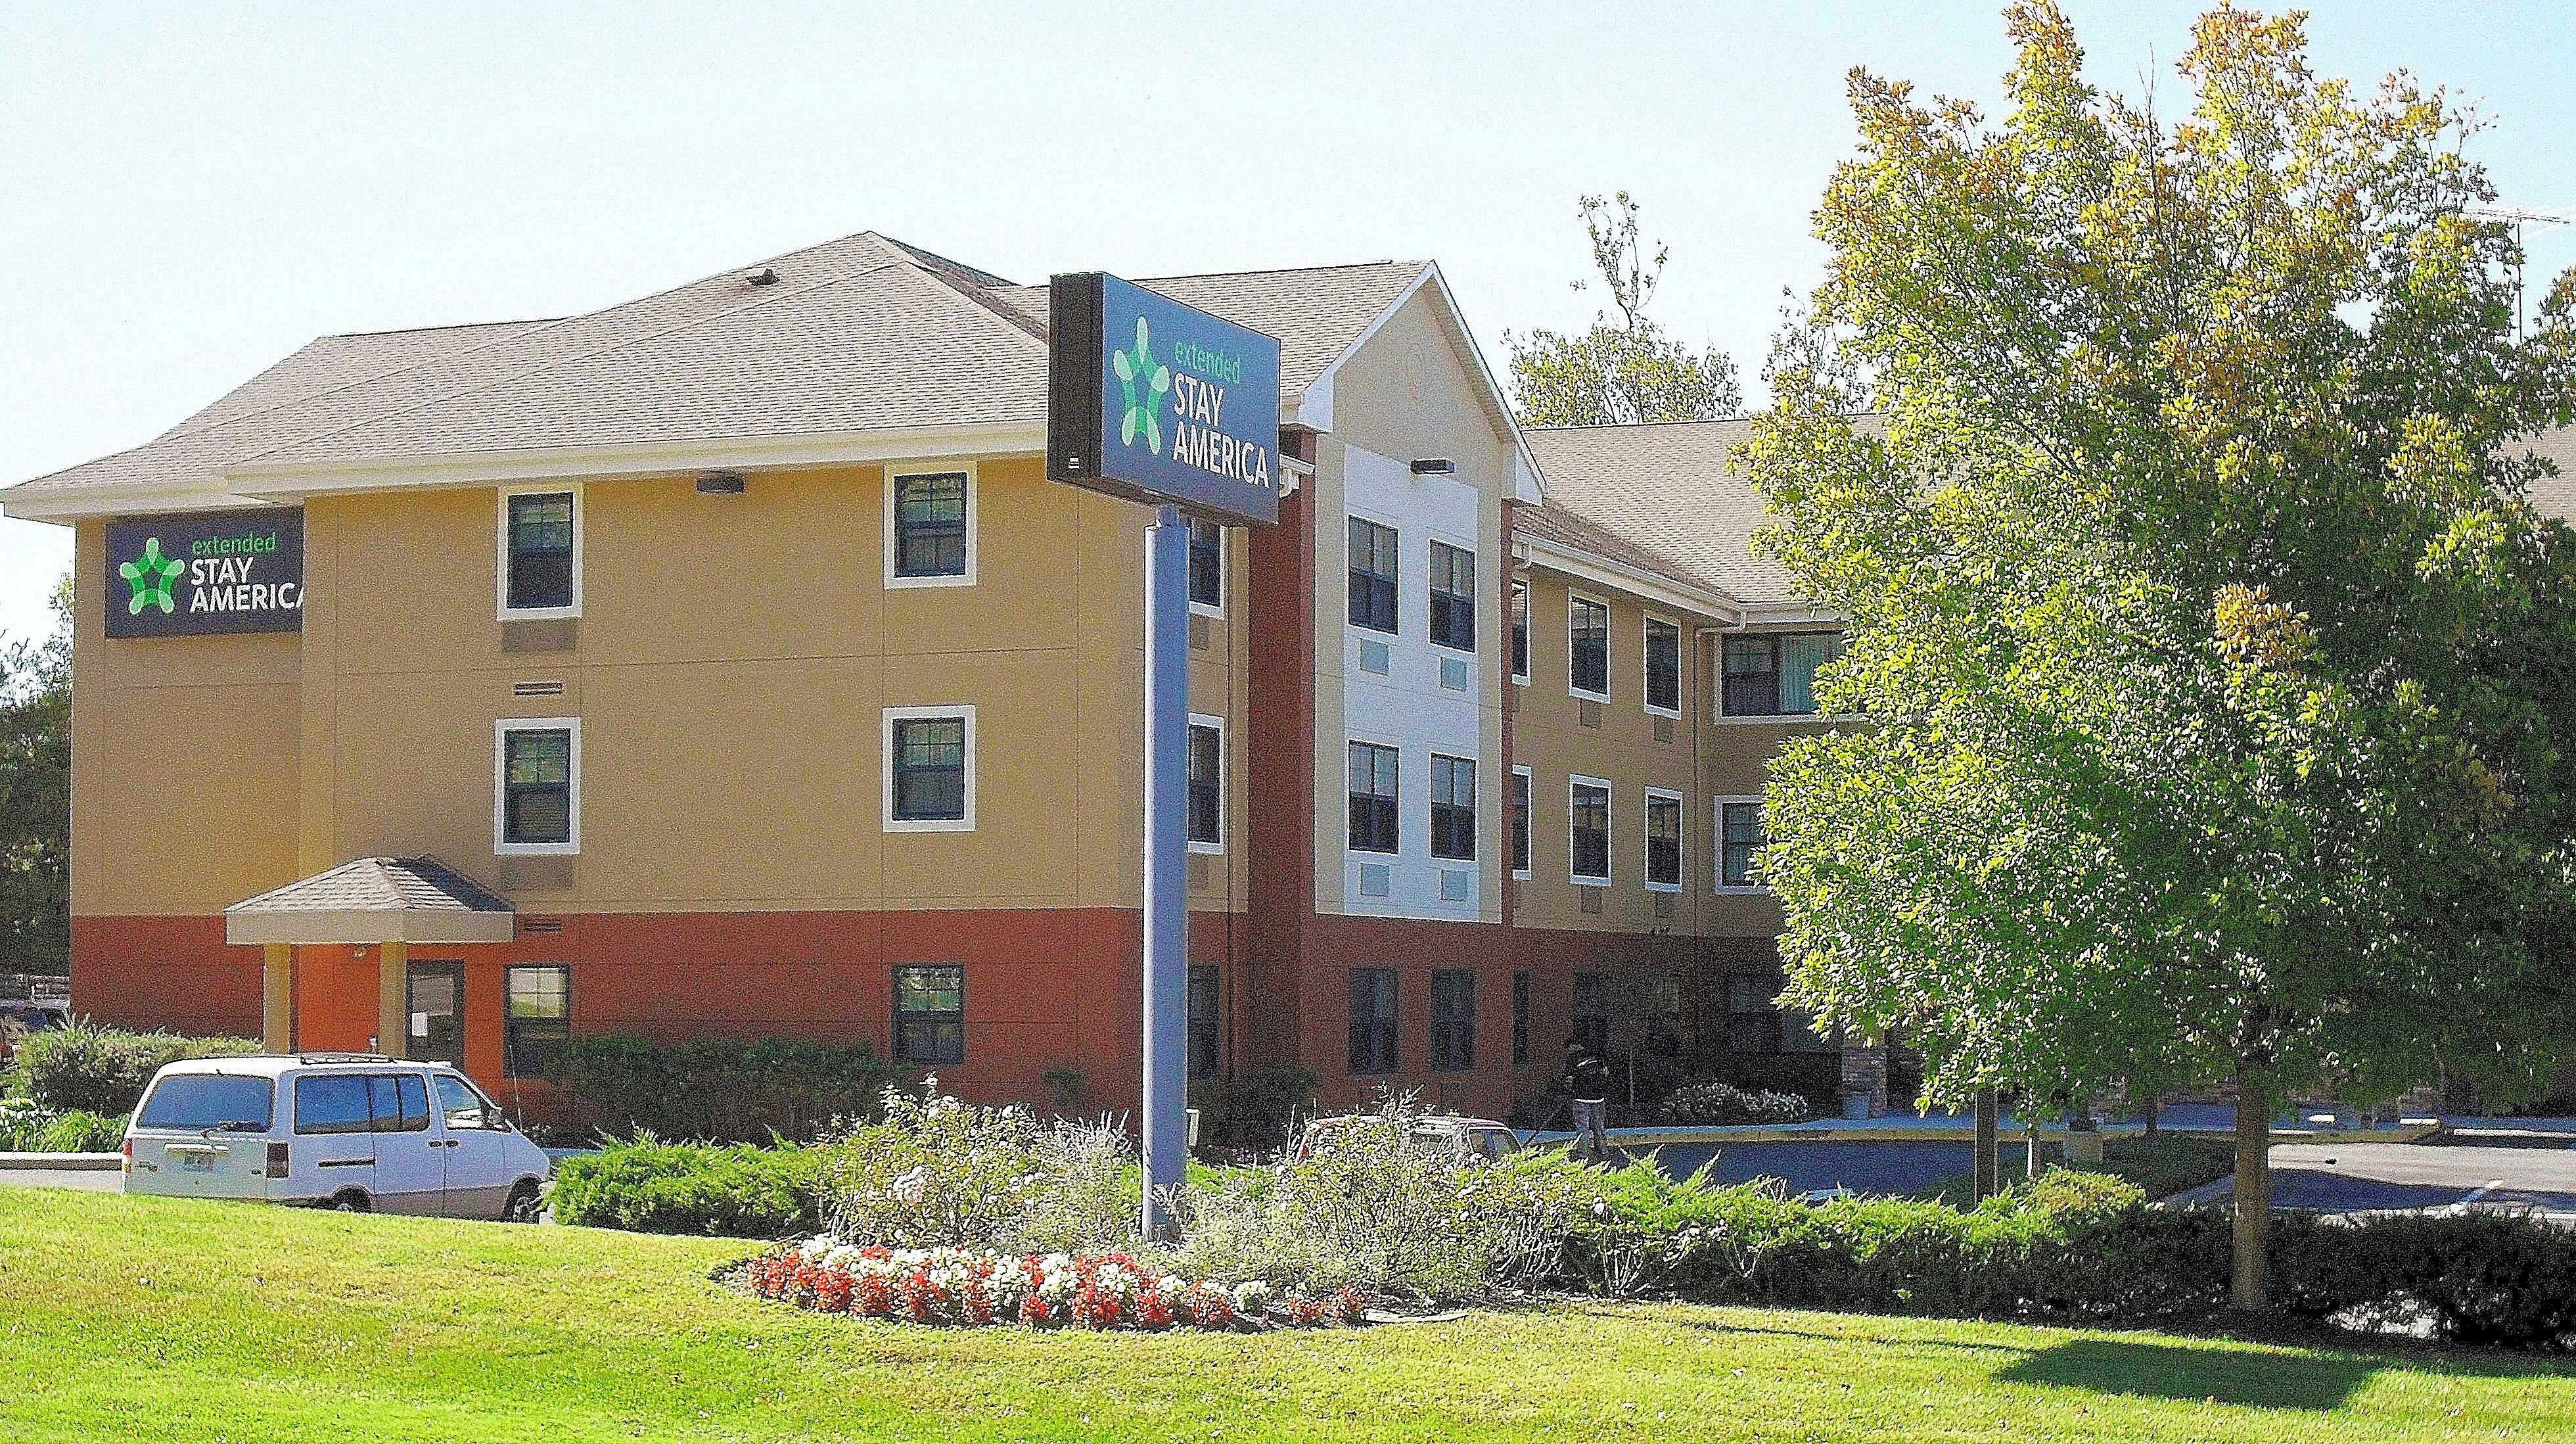 Apartments Near Penn St Great Valley Furnished Studio - Philadelphia - Malvern - Great Valley for Pennsylvania State University Great Valley Students in Malvern, PA